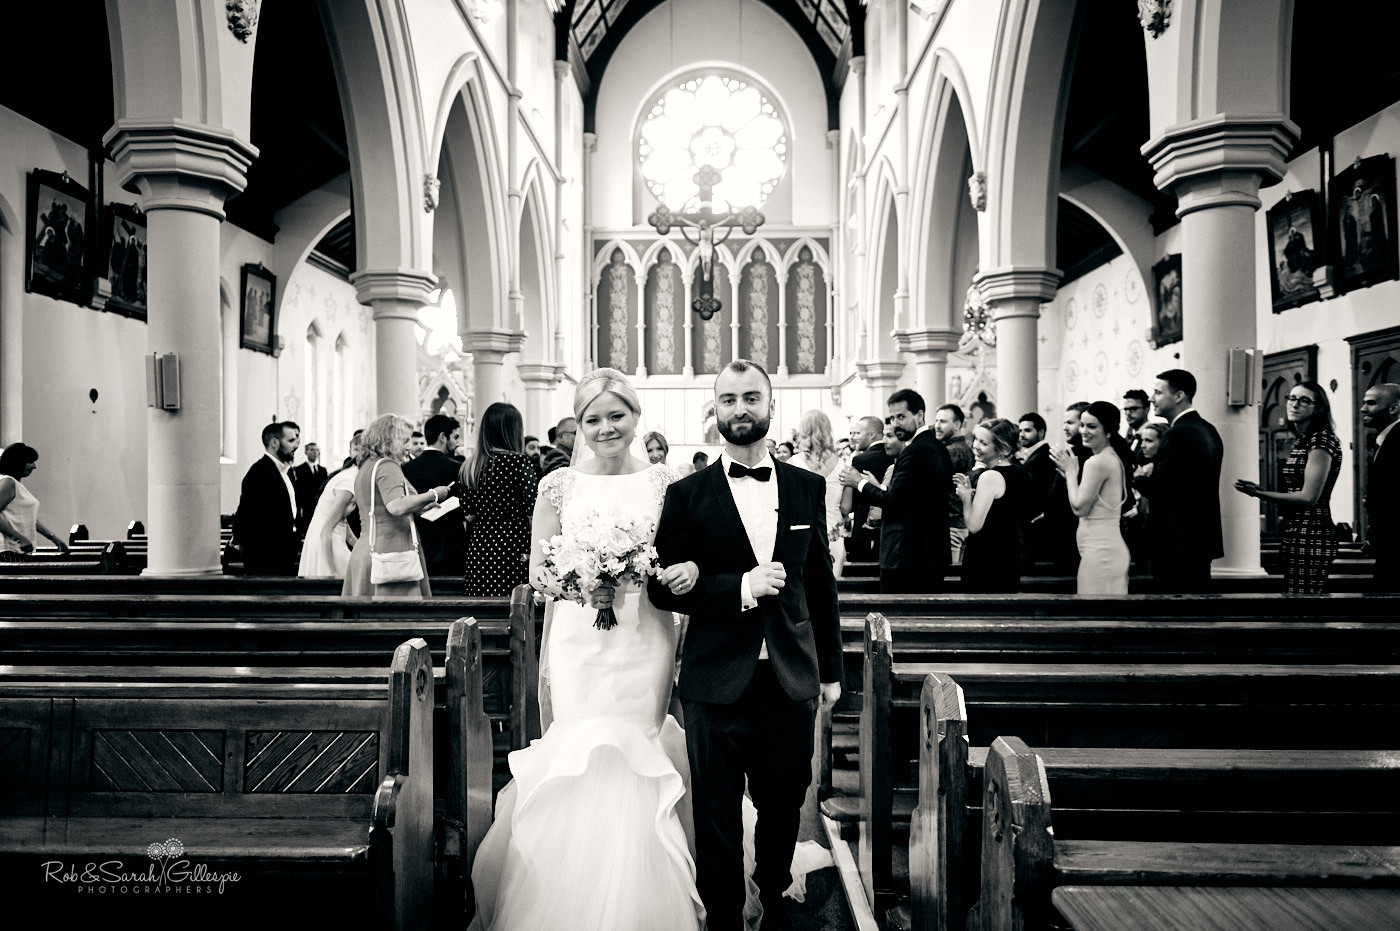 Bride, groom and wedding guests at St Anne's church